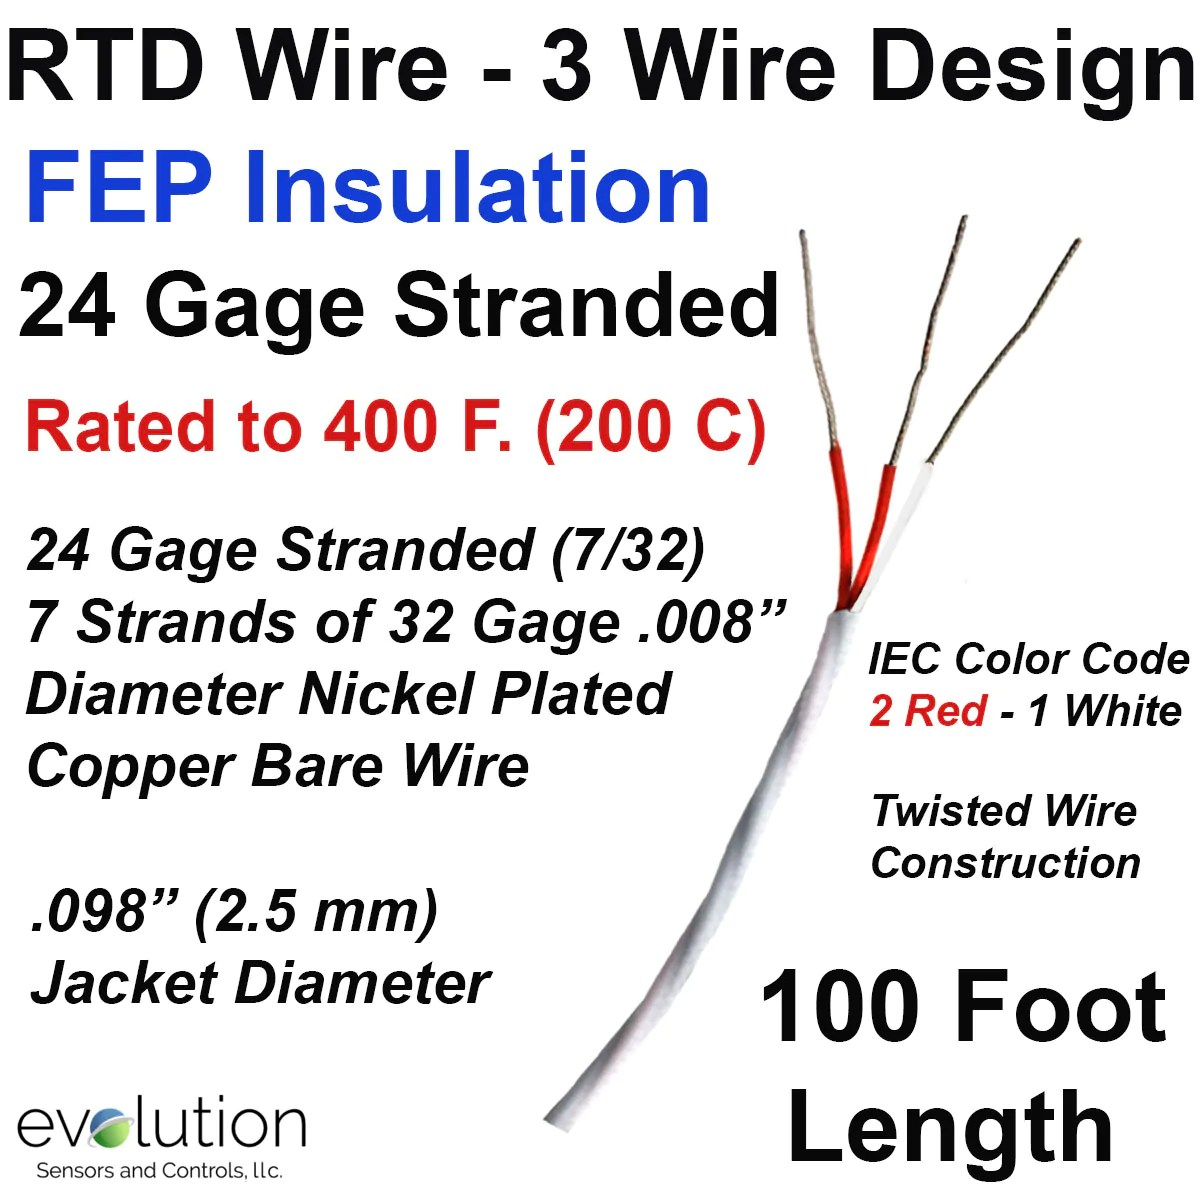 small resolution of rtd wiring color code wiring diagram show rtd wire color code rtd wiring color code